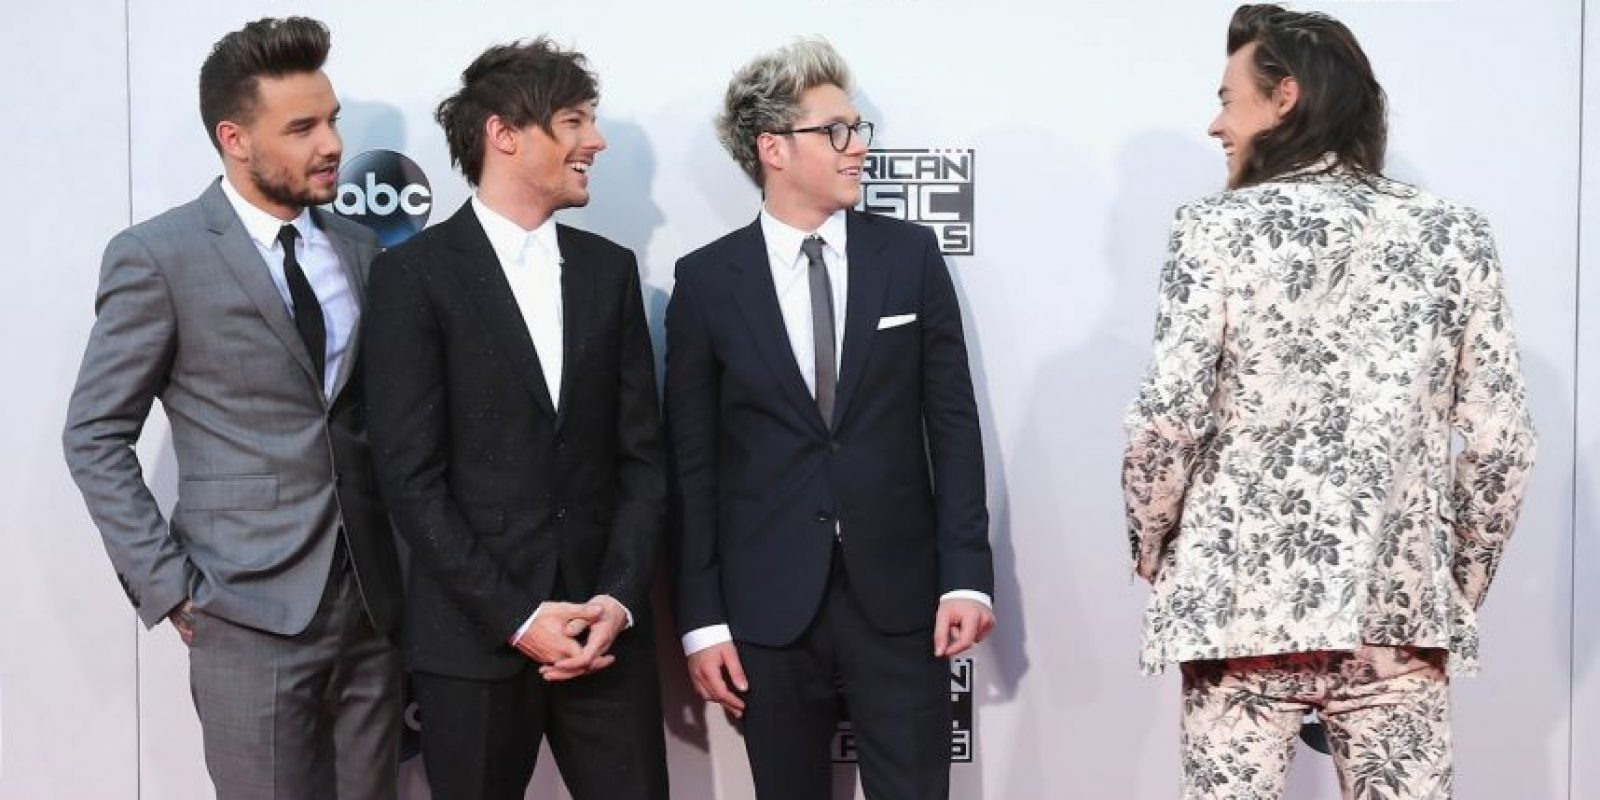 ¿Qué pasará con Niall Horan? Foto: Getty Images